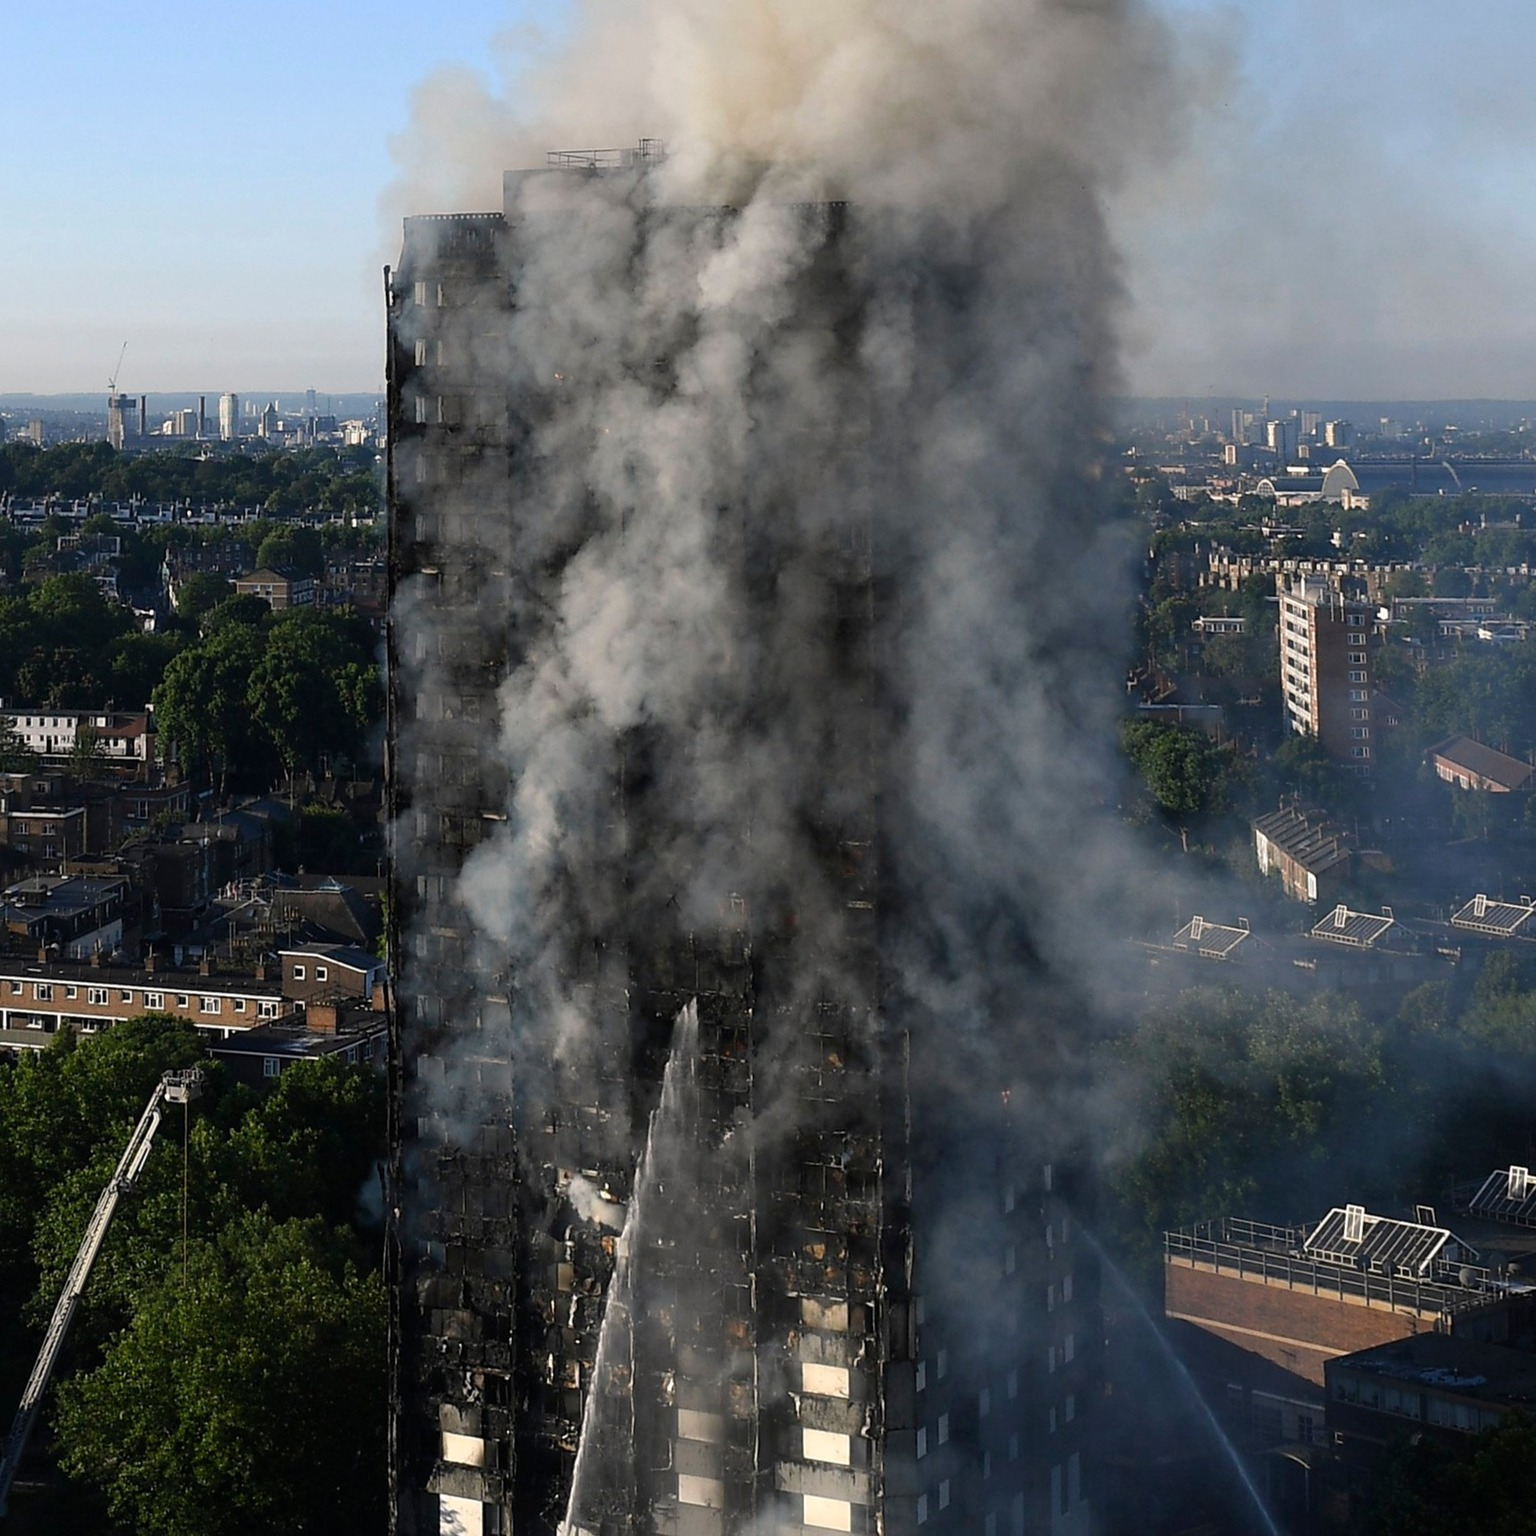 epa06027144 Smoke rises from the fire at the Grenfell Tower, a 24-storey apartment block in North Kensington, London, Britain, 14 June 2017. According to the London Fire Brigade, 40 fire engines and 200 firefighters are working to put out the blaze. Residents in the tower were said to be evacuating and a number of people were treated for a 'range of injuries,' Metropolitan Police said.  EPA/FACUNDO ARRIZABALAGA